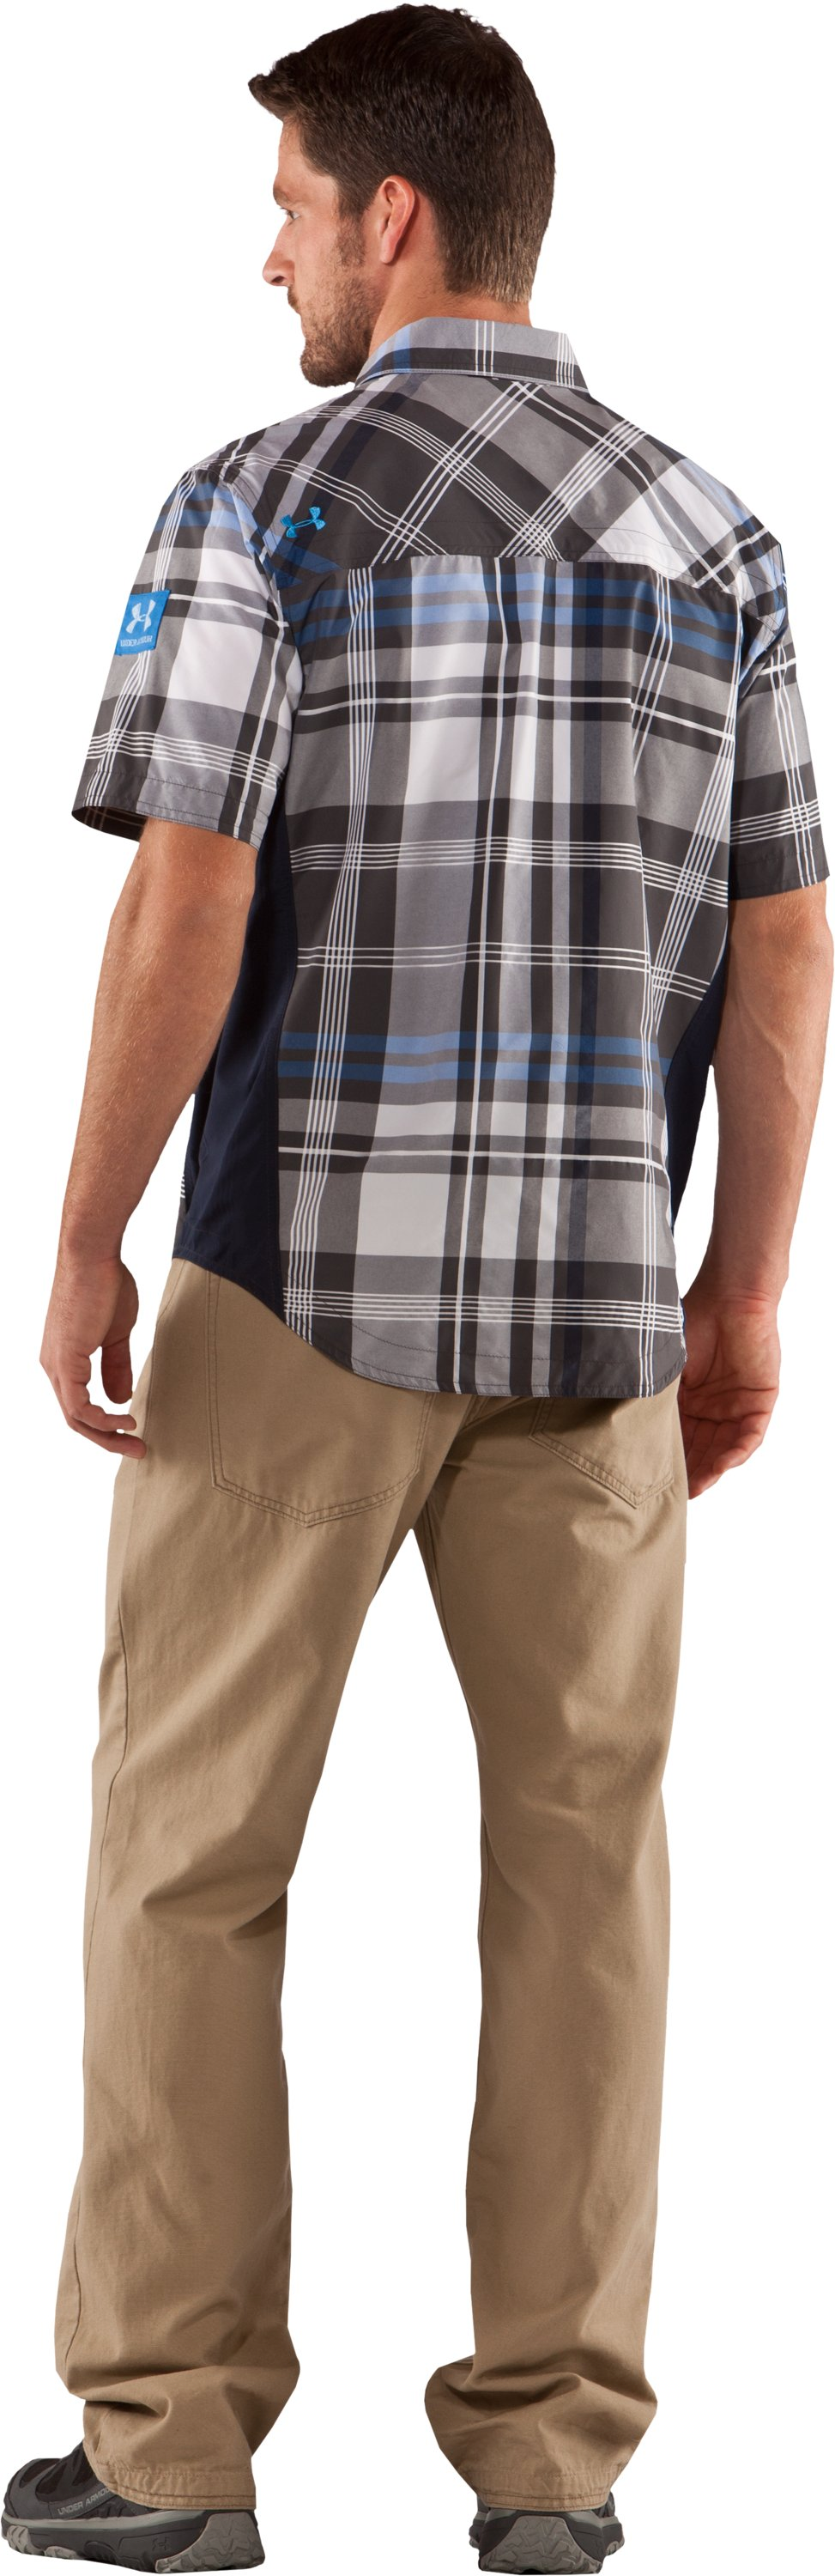 Men's Big Plaid Woven Short Sleeve Shirt, Battleship, Back